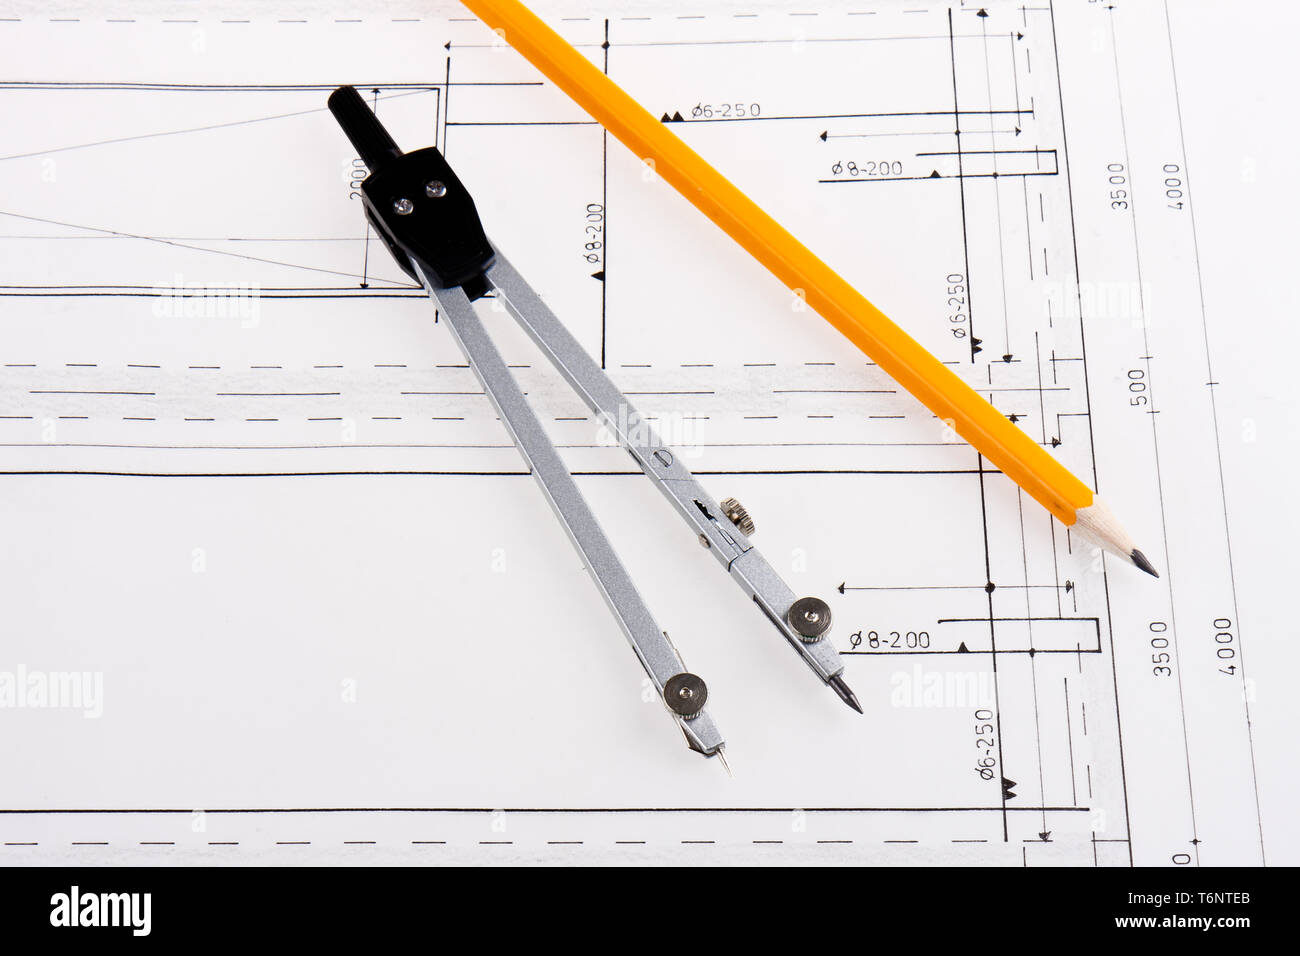 Building plan of reinforced concrete construction with compasses Stock Photo